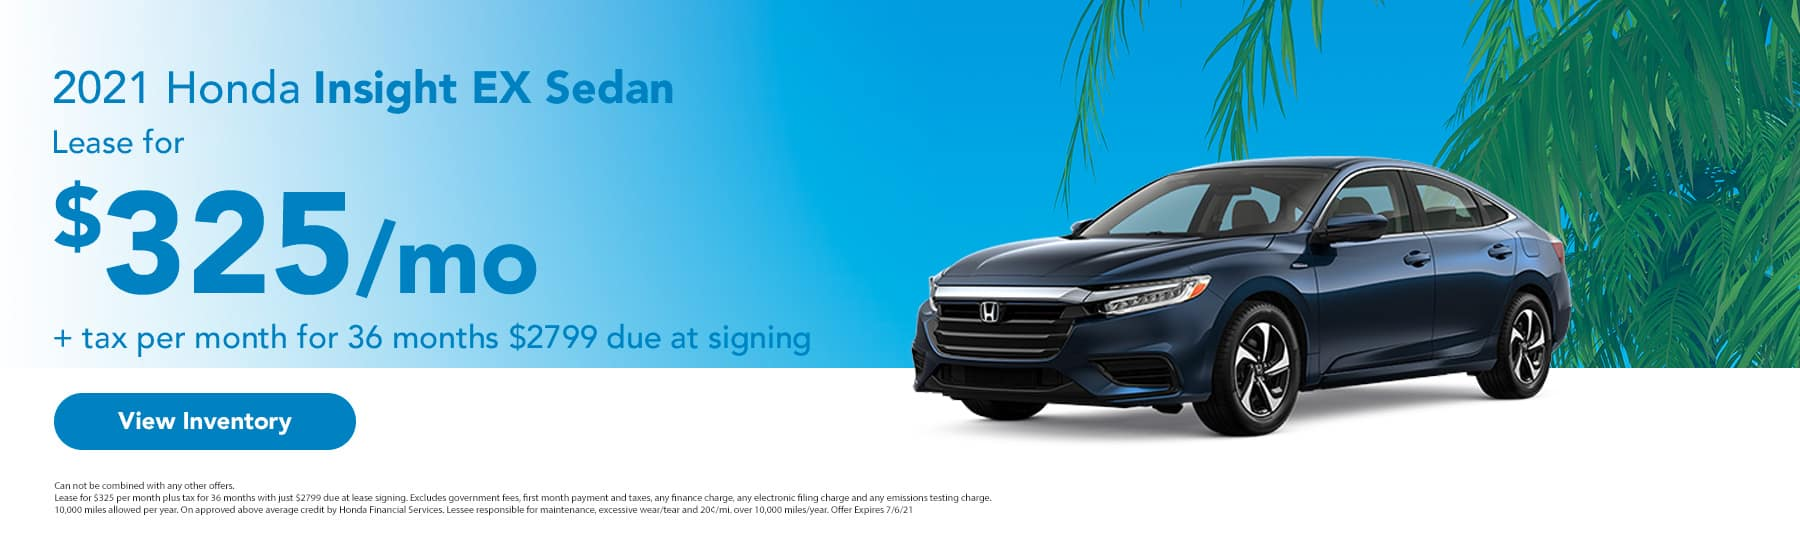 2021 Honda Insight EX Sedan Lease for $325 + tax per month for 36 months $2799 due at signing